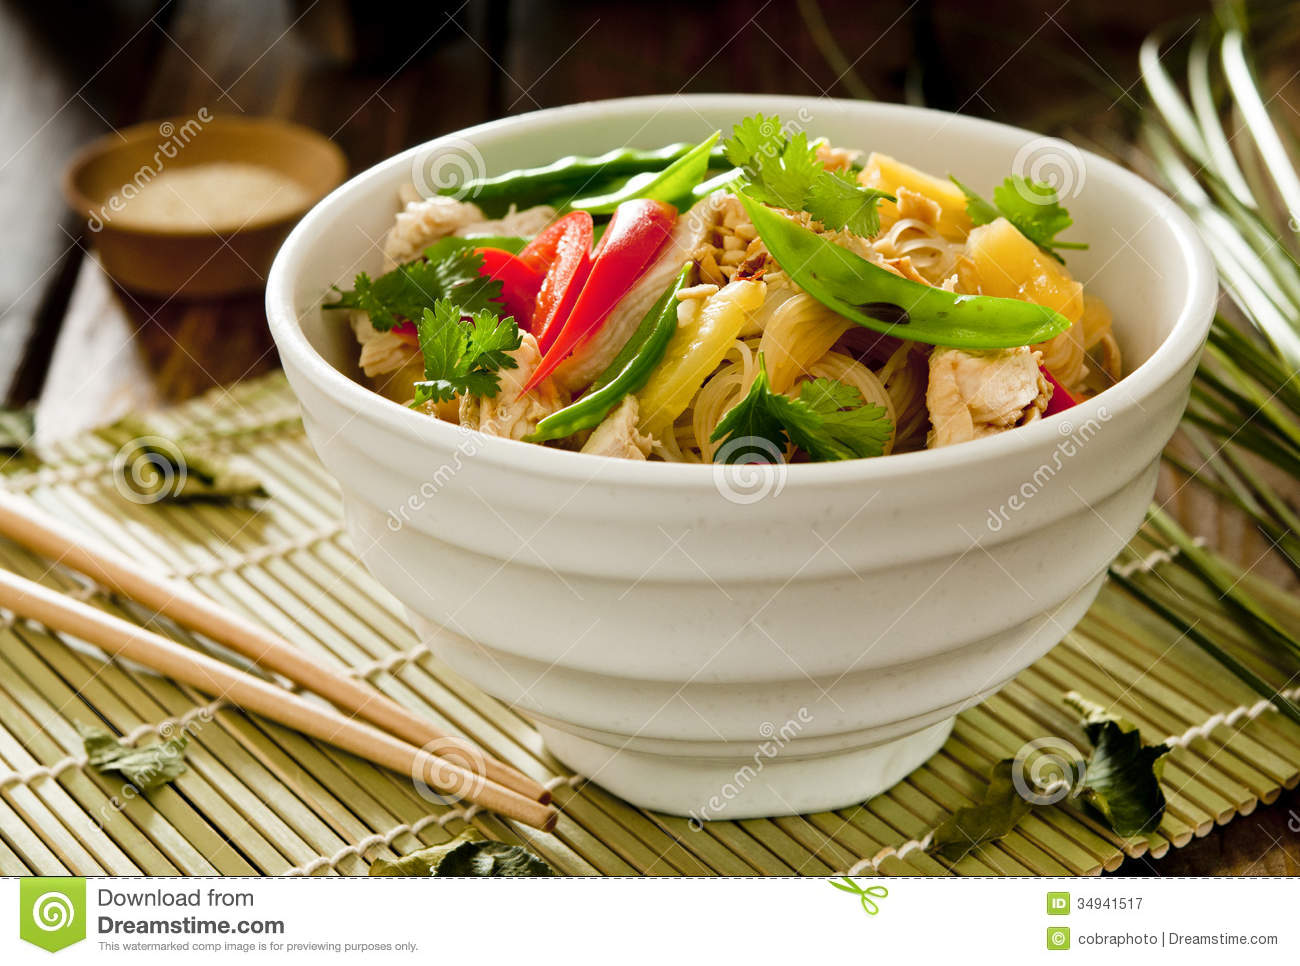 Rice noodle salad with shredded chicken, vegetables and pineapple.